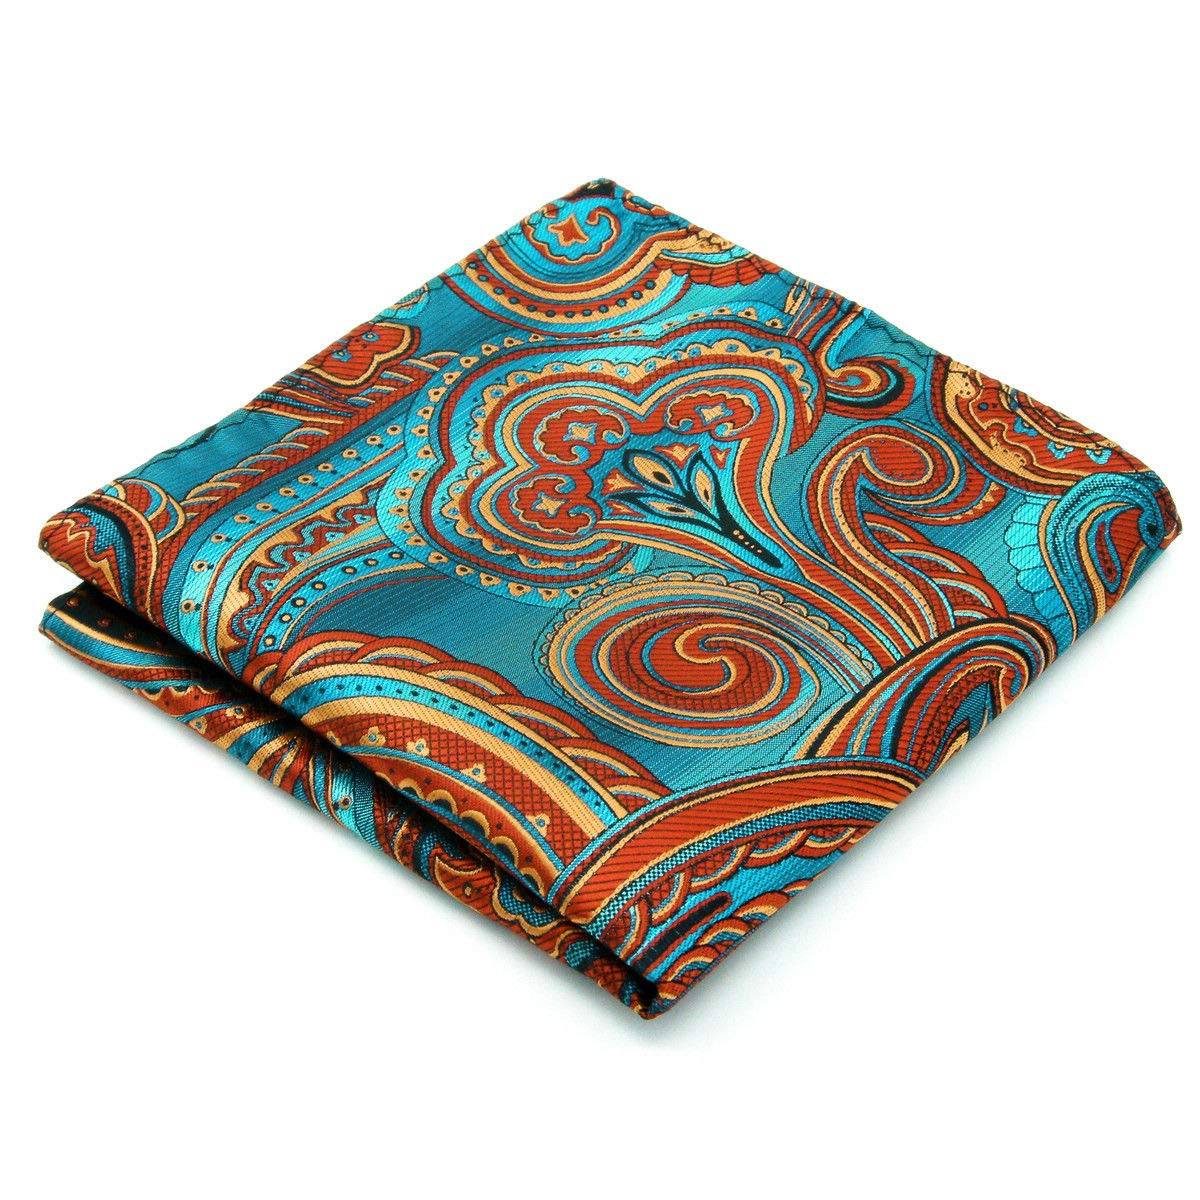 Shlax & Wing Mens Pocket Square Silk Hanky Milticolored Patterned Hanky AH33